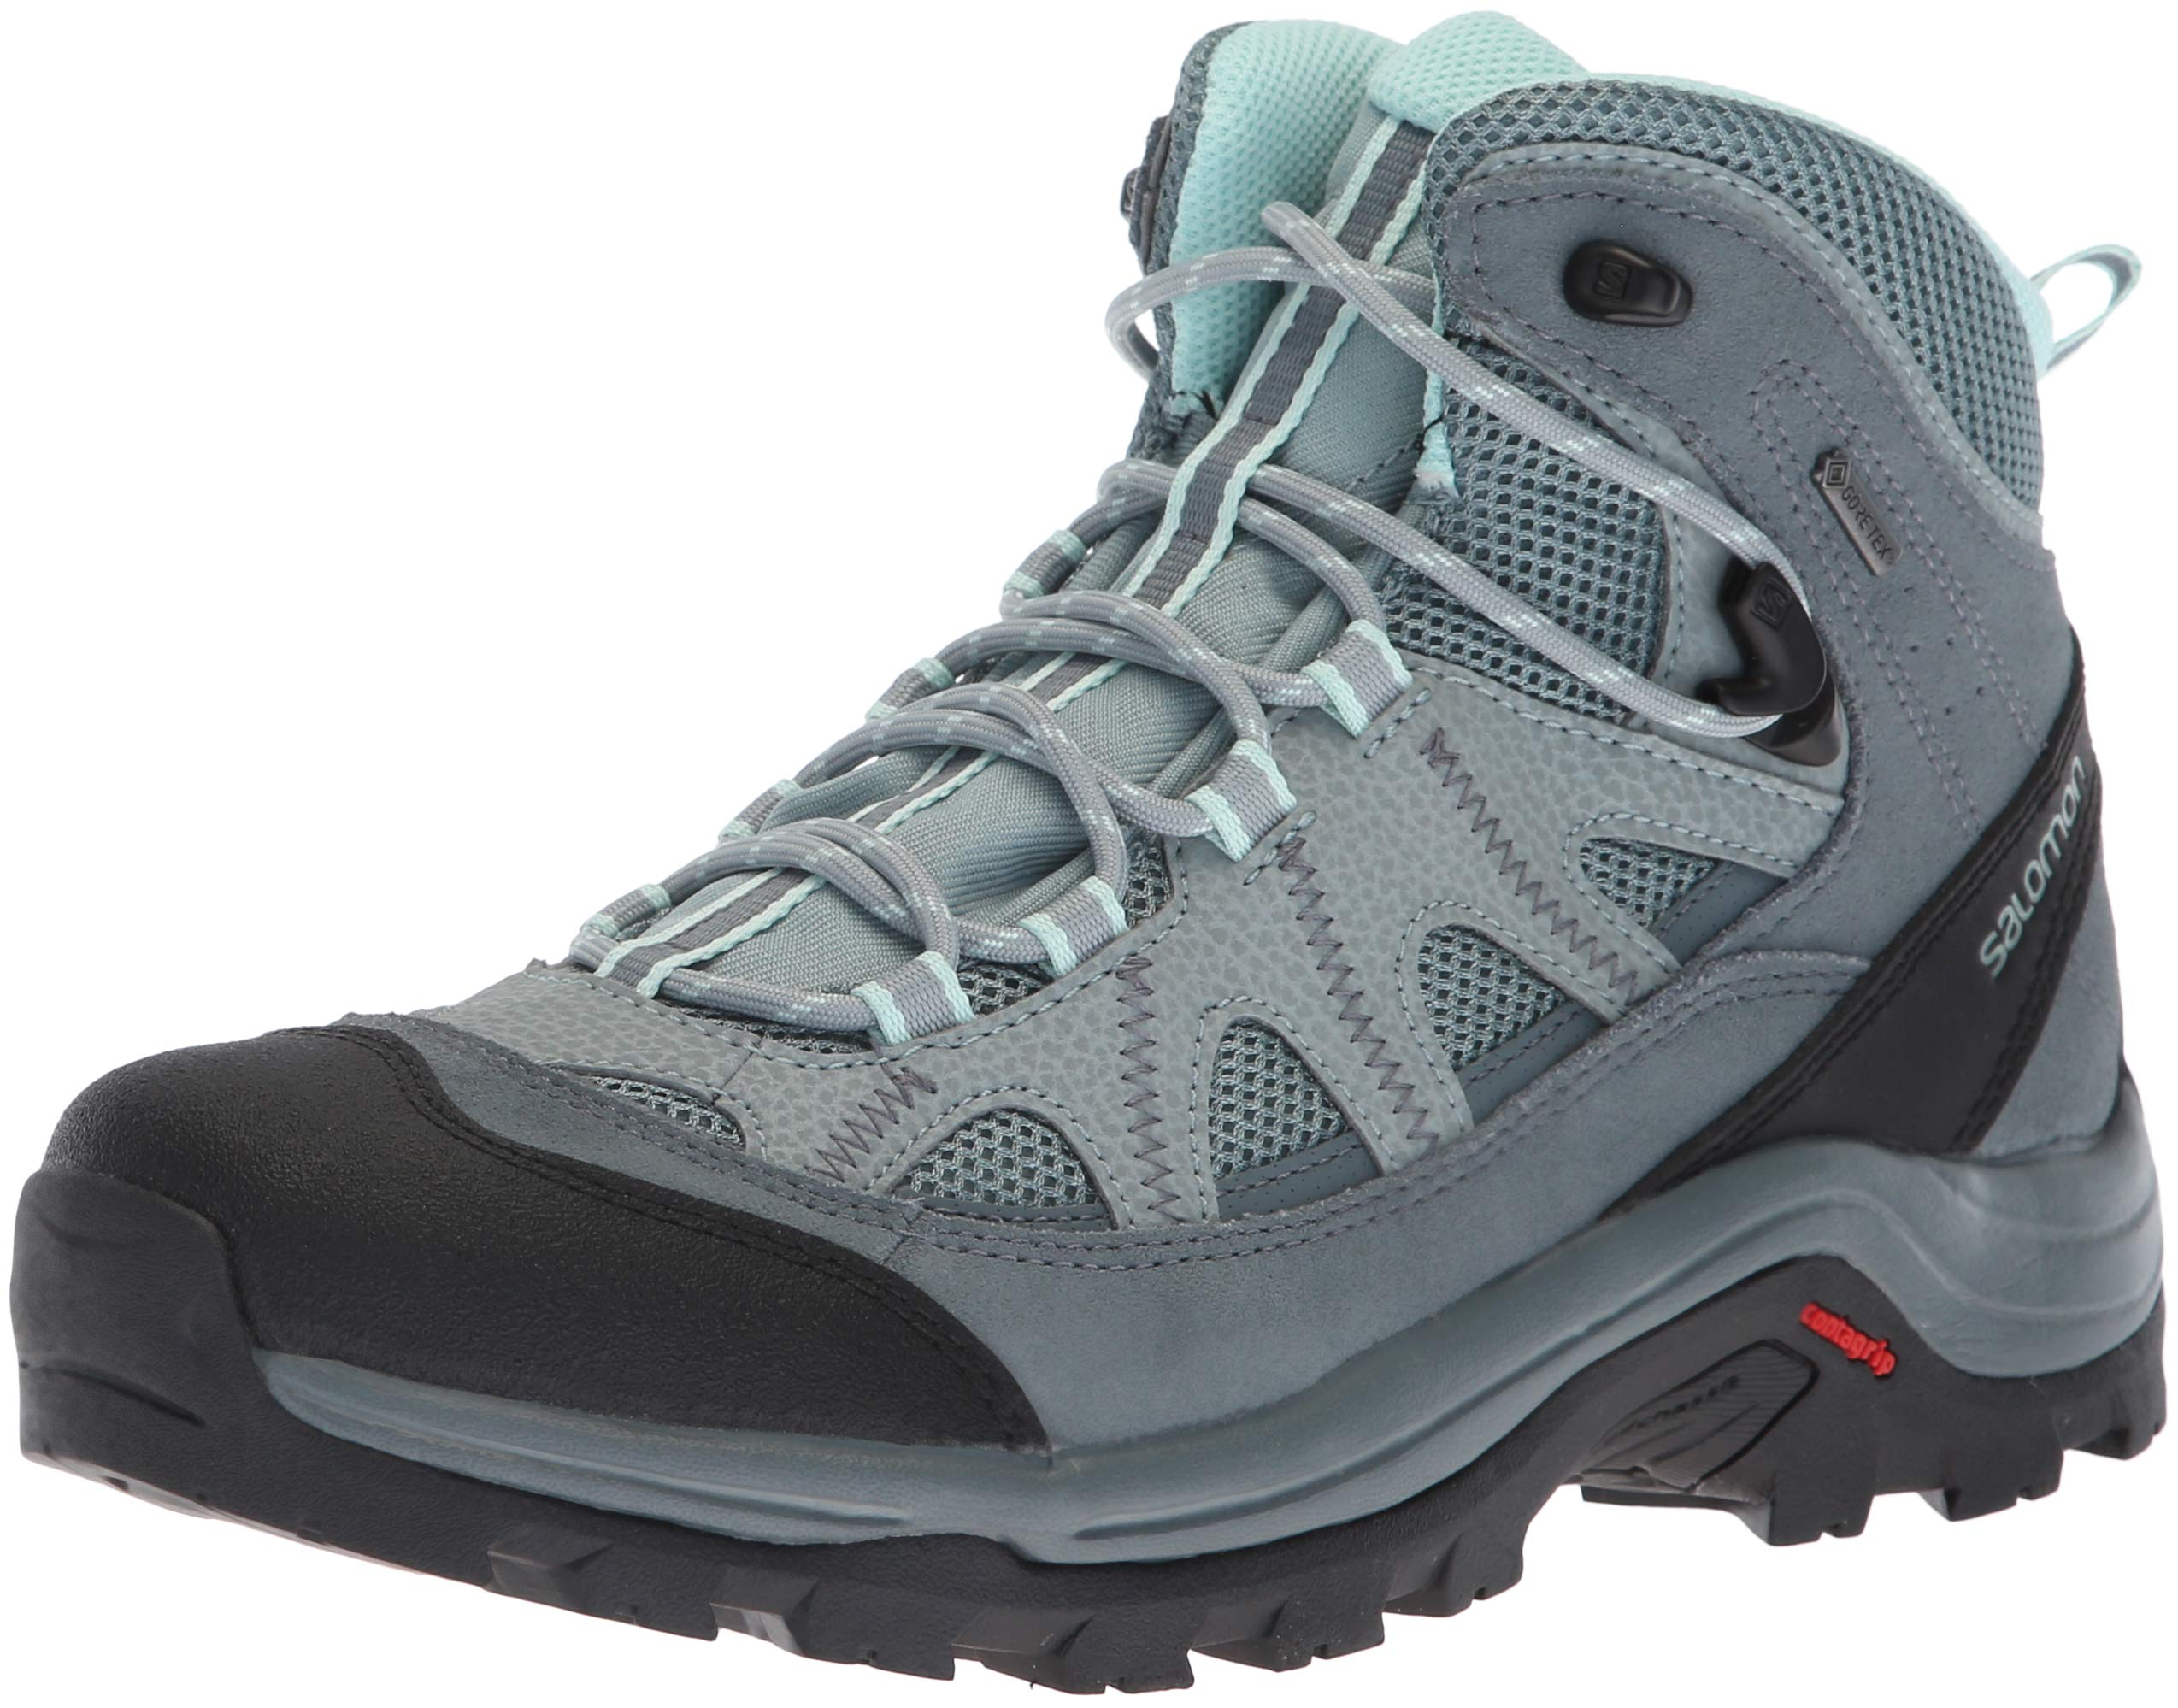 Salomon Women's Authentic LTR GTX W Backpacking Boot, Lead/Stormy Weather/Eggshell Blue, 10 B US